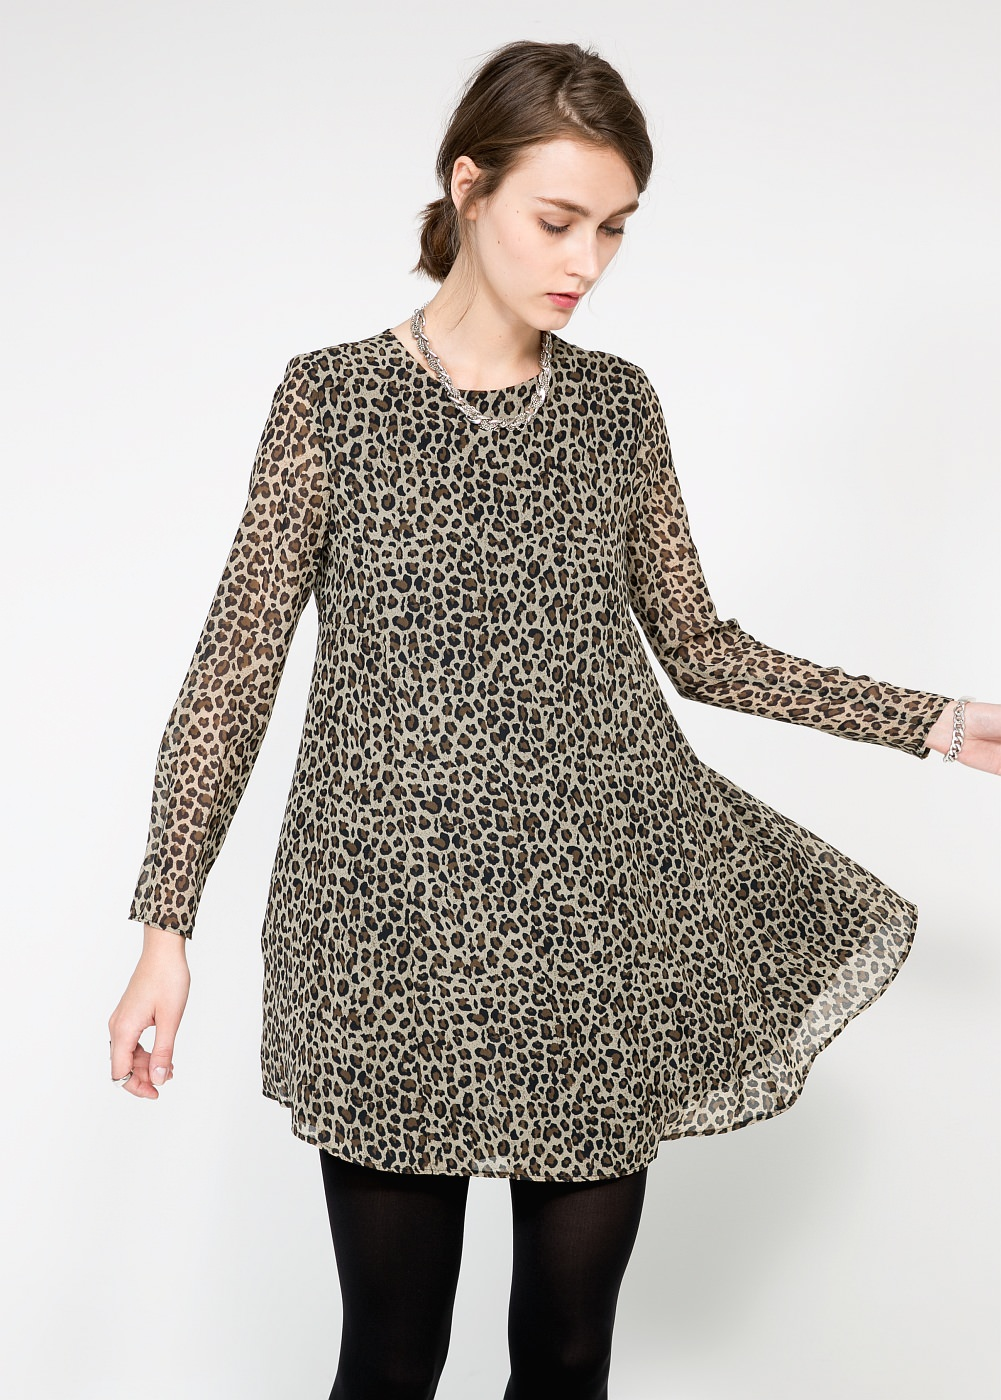 Mango Leopard Print Dress | Leopard Print Fall 2014